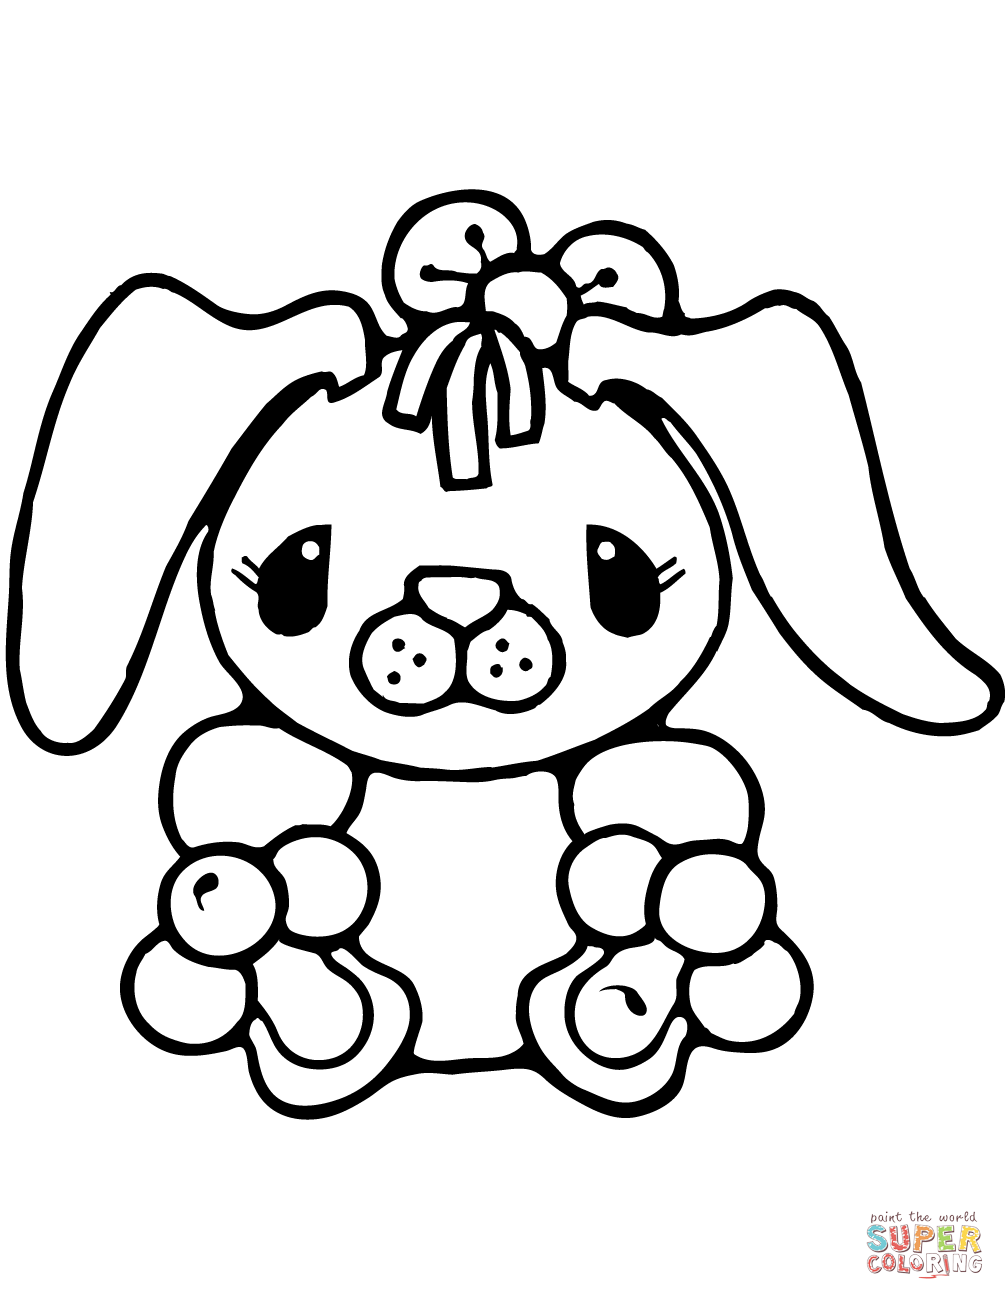 Tiny Bunny Rabbit Coloring Page Free Printable Coloring Pages